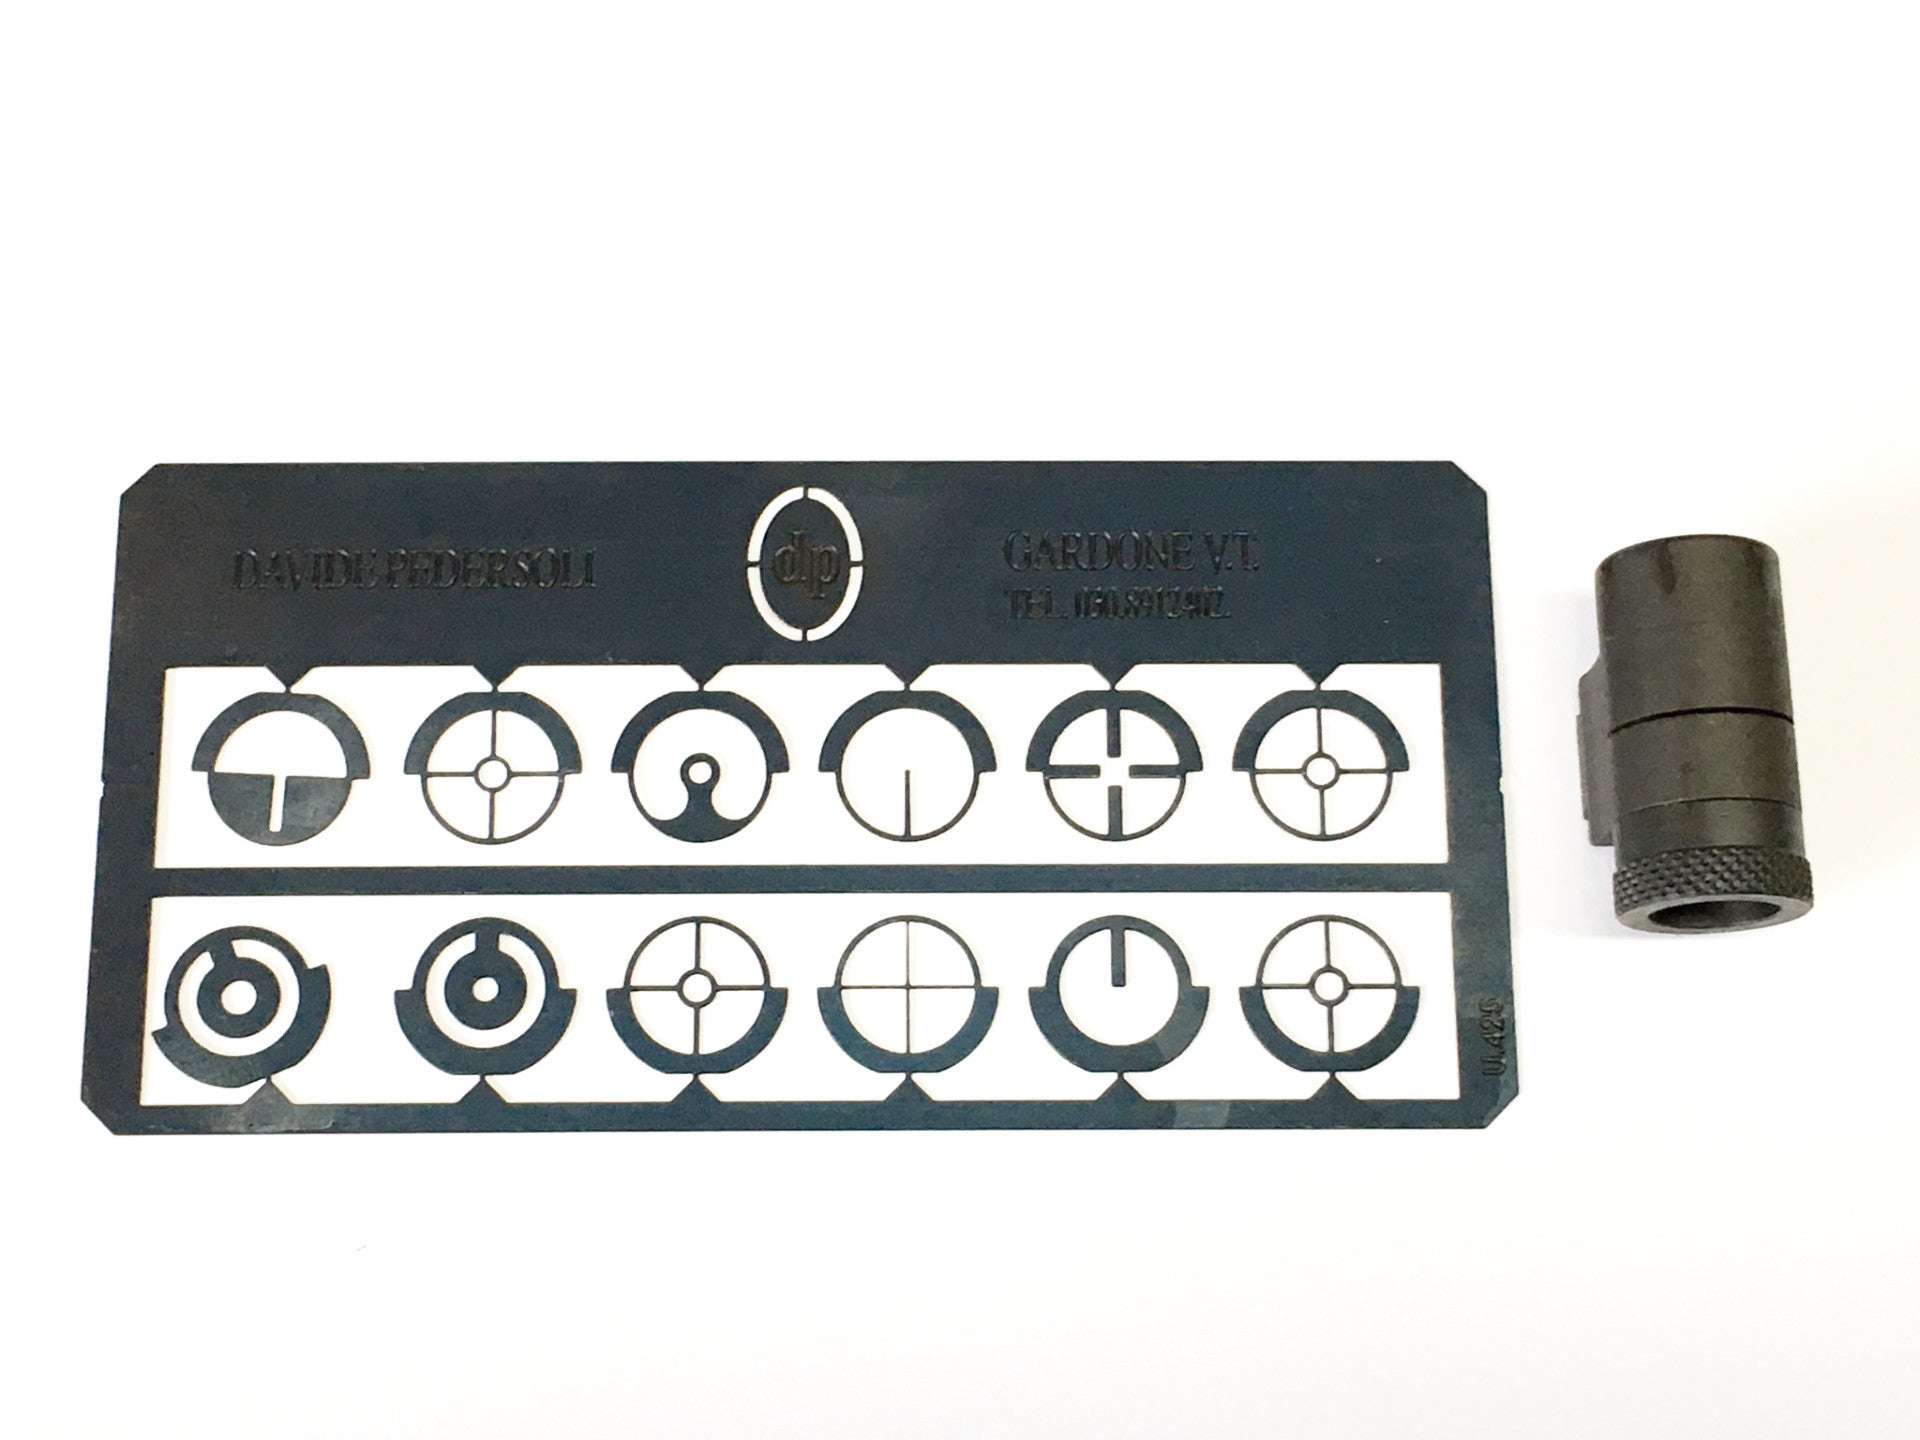 Pedersoli Tunnel Sight with 12 Inserts